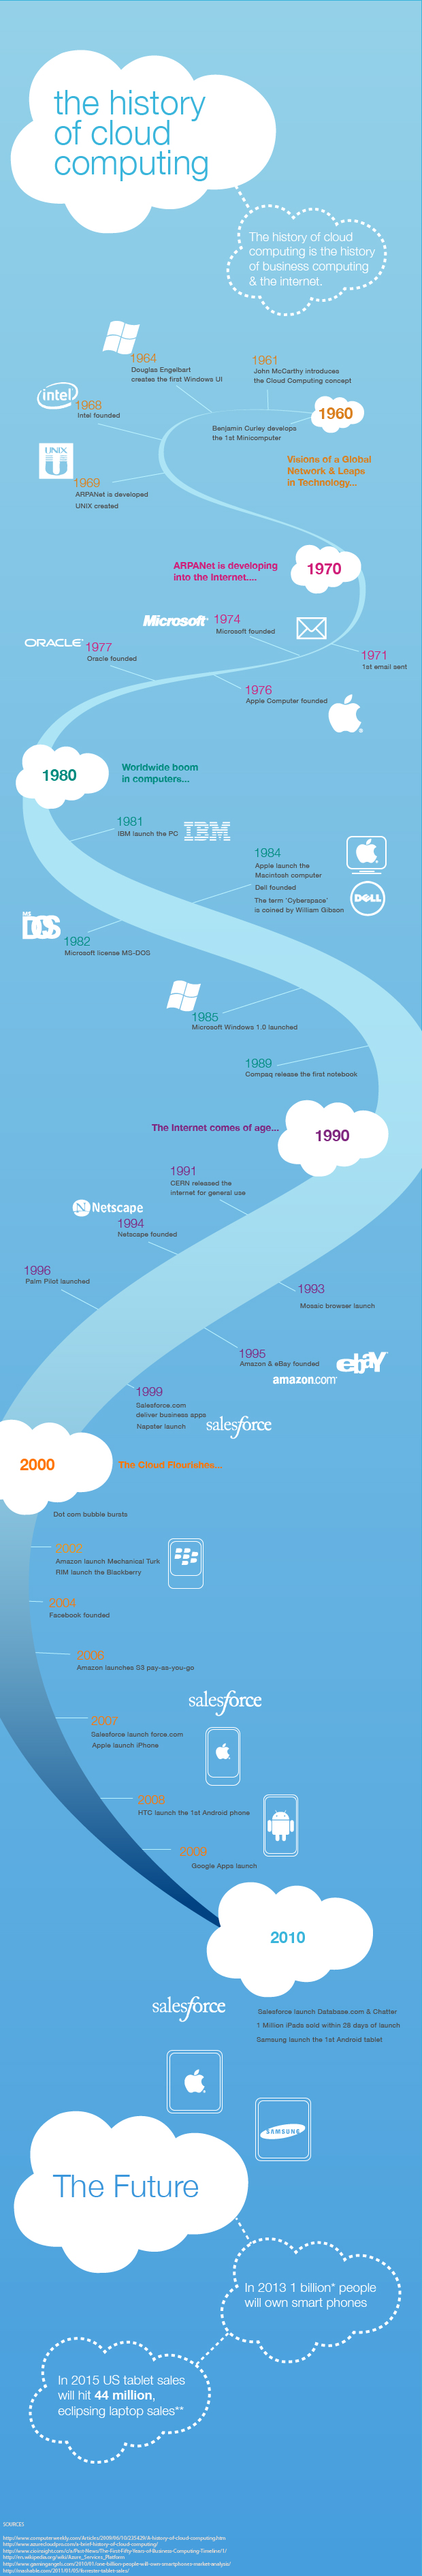 where your files went understanding the concept behind cloud the history of cloud computing image source sforce